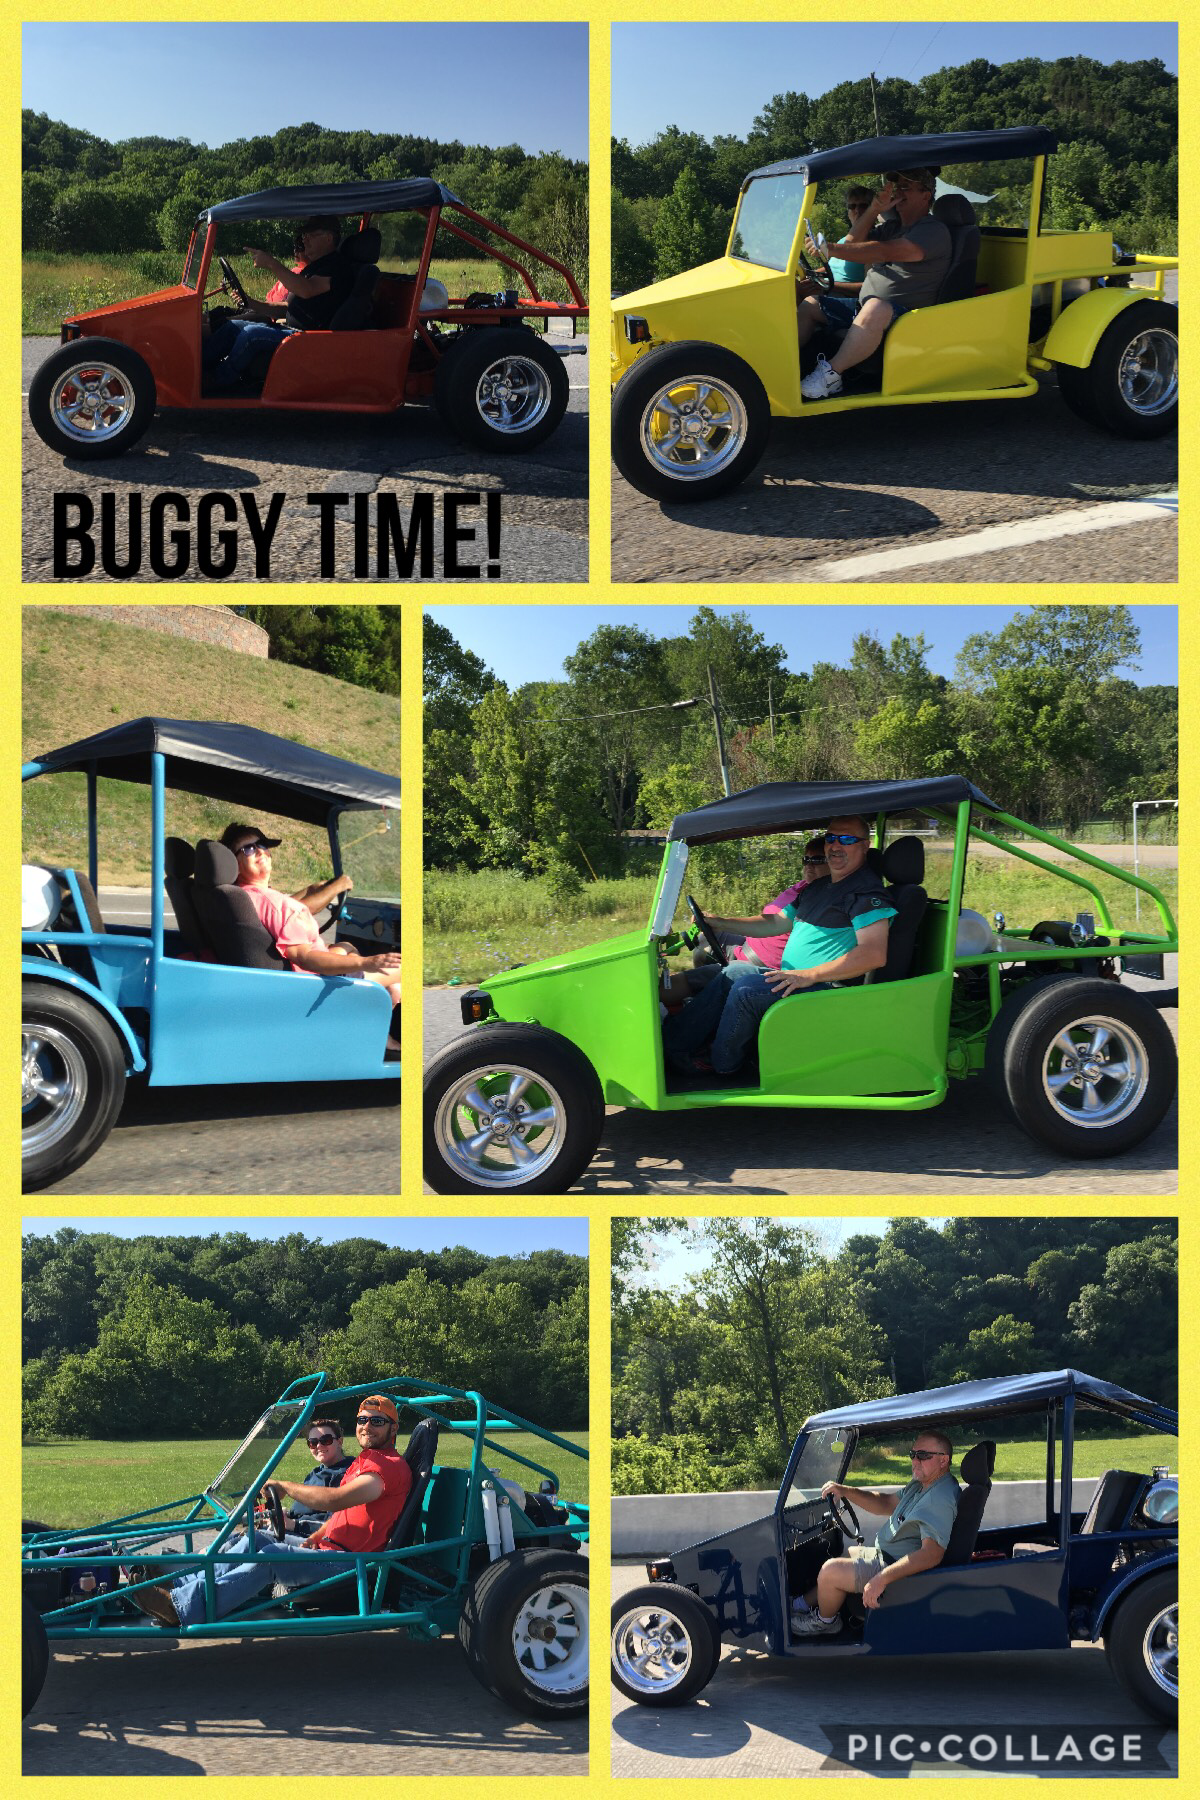 Buggy Rides